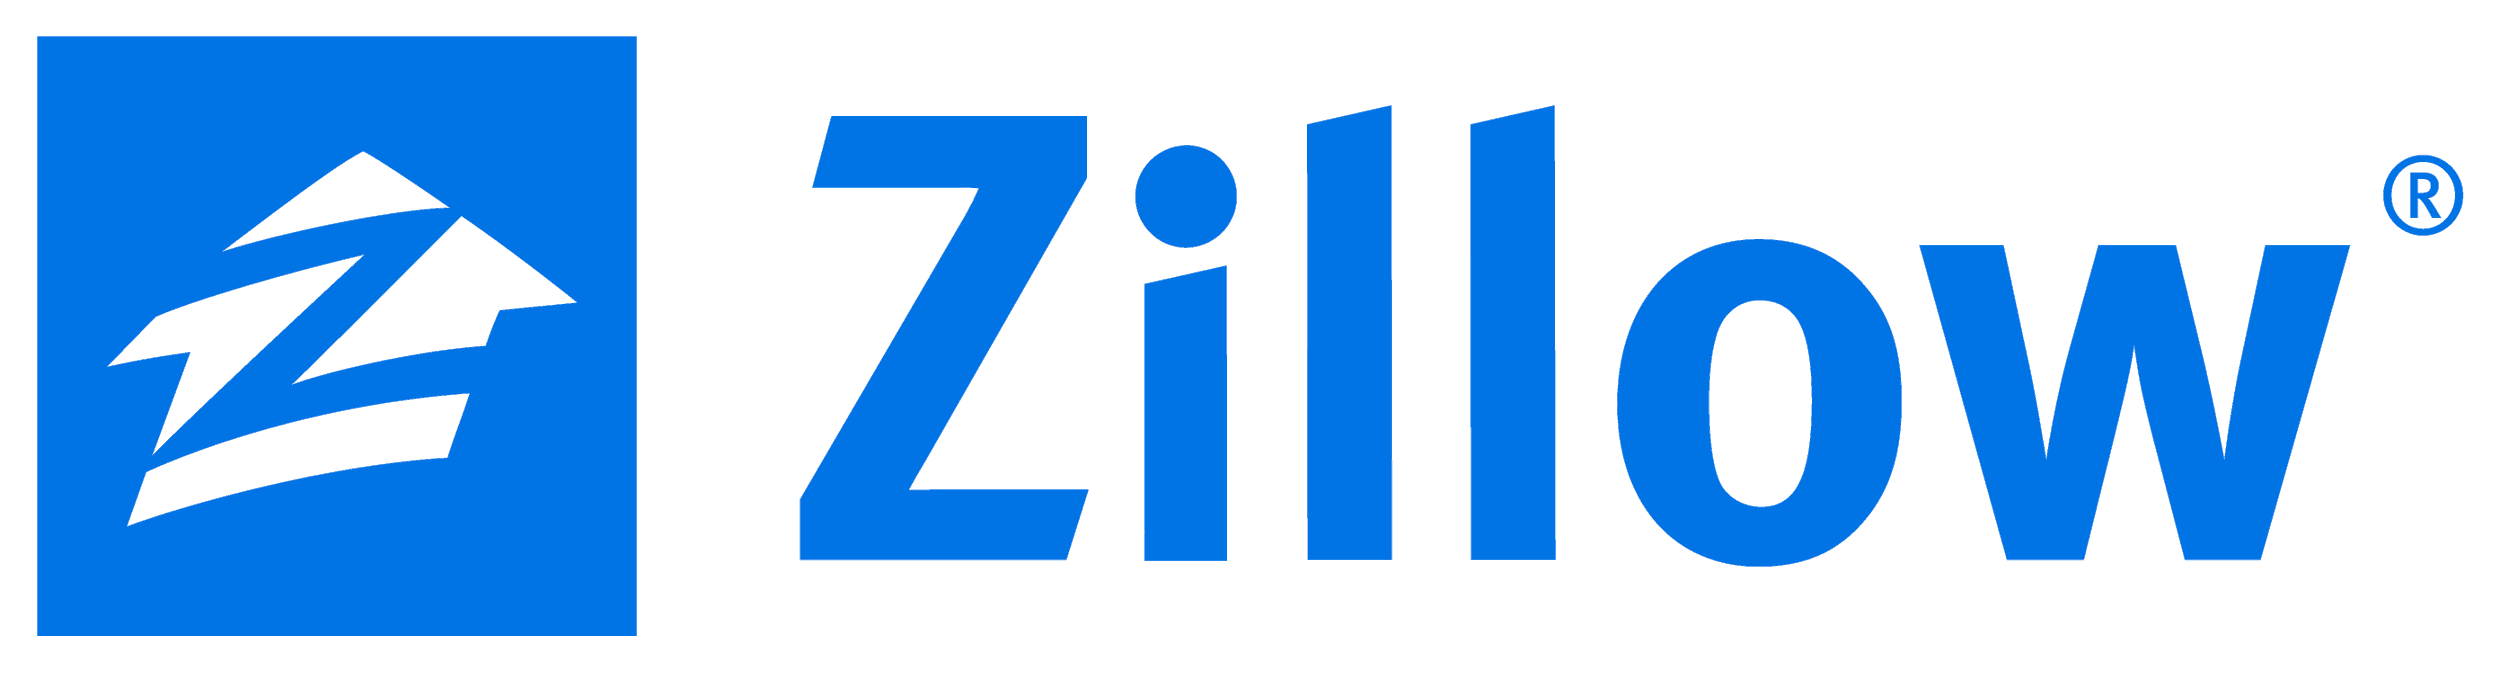 zillow - real estate lead generation companies